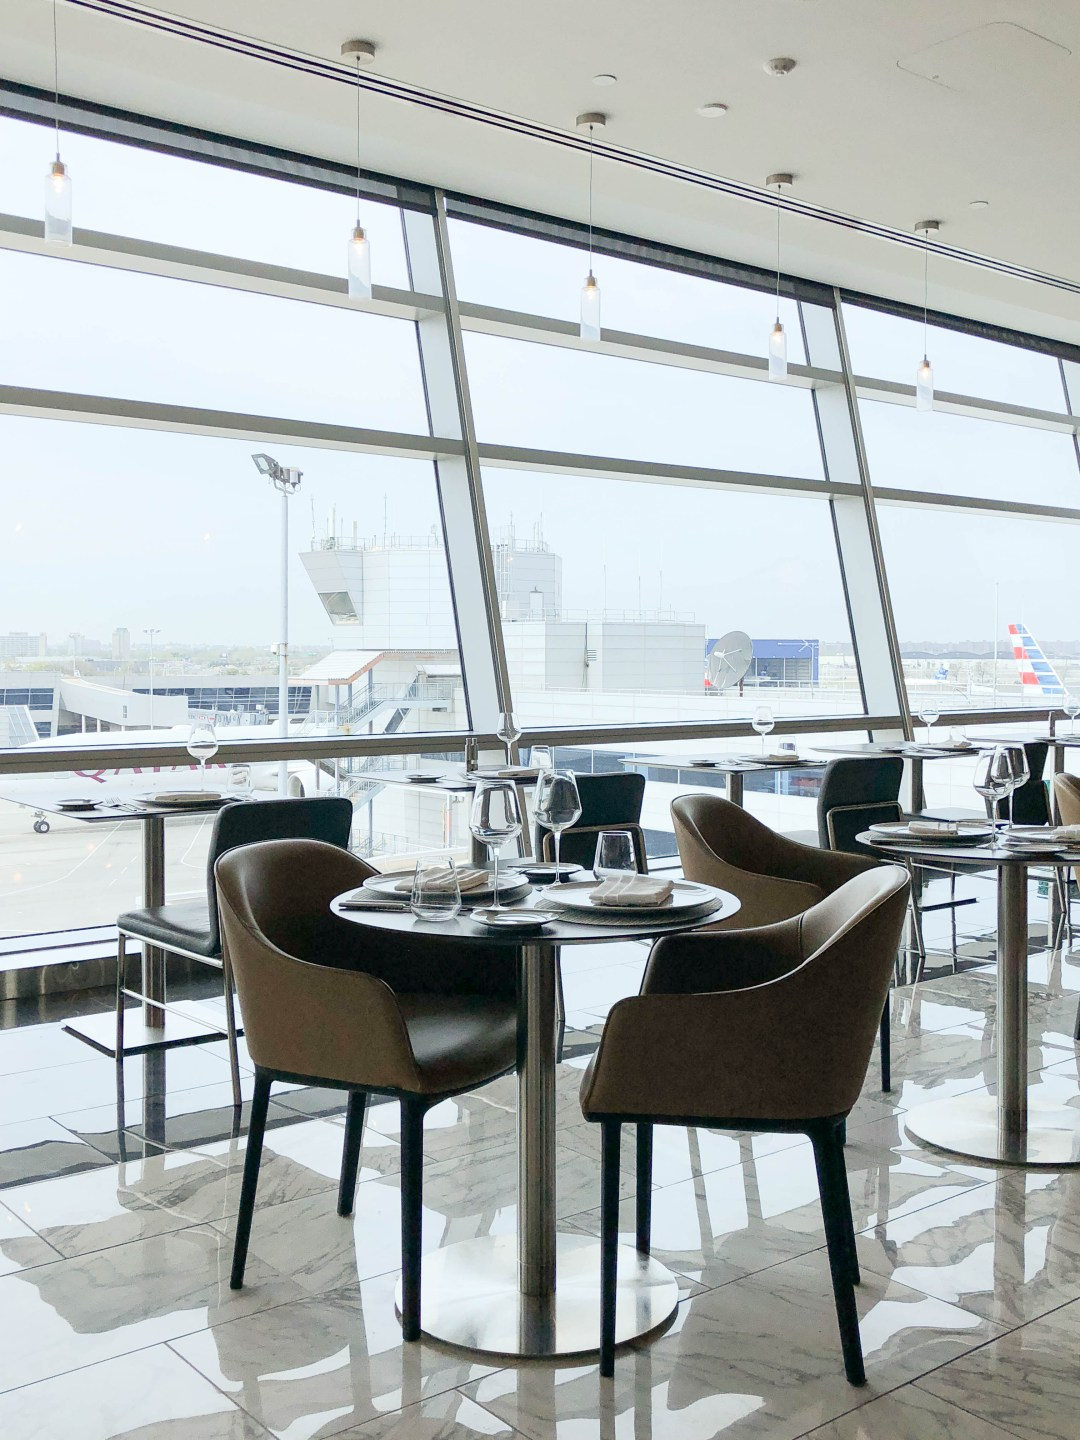 American Airlines Flagship First dining